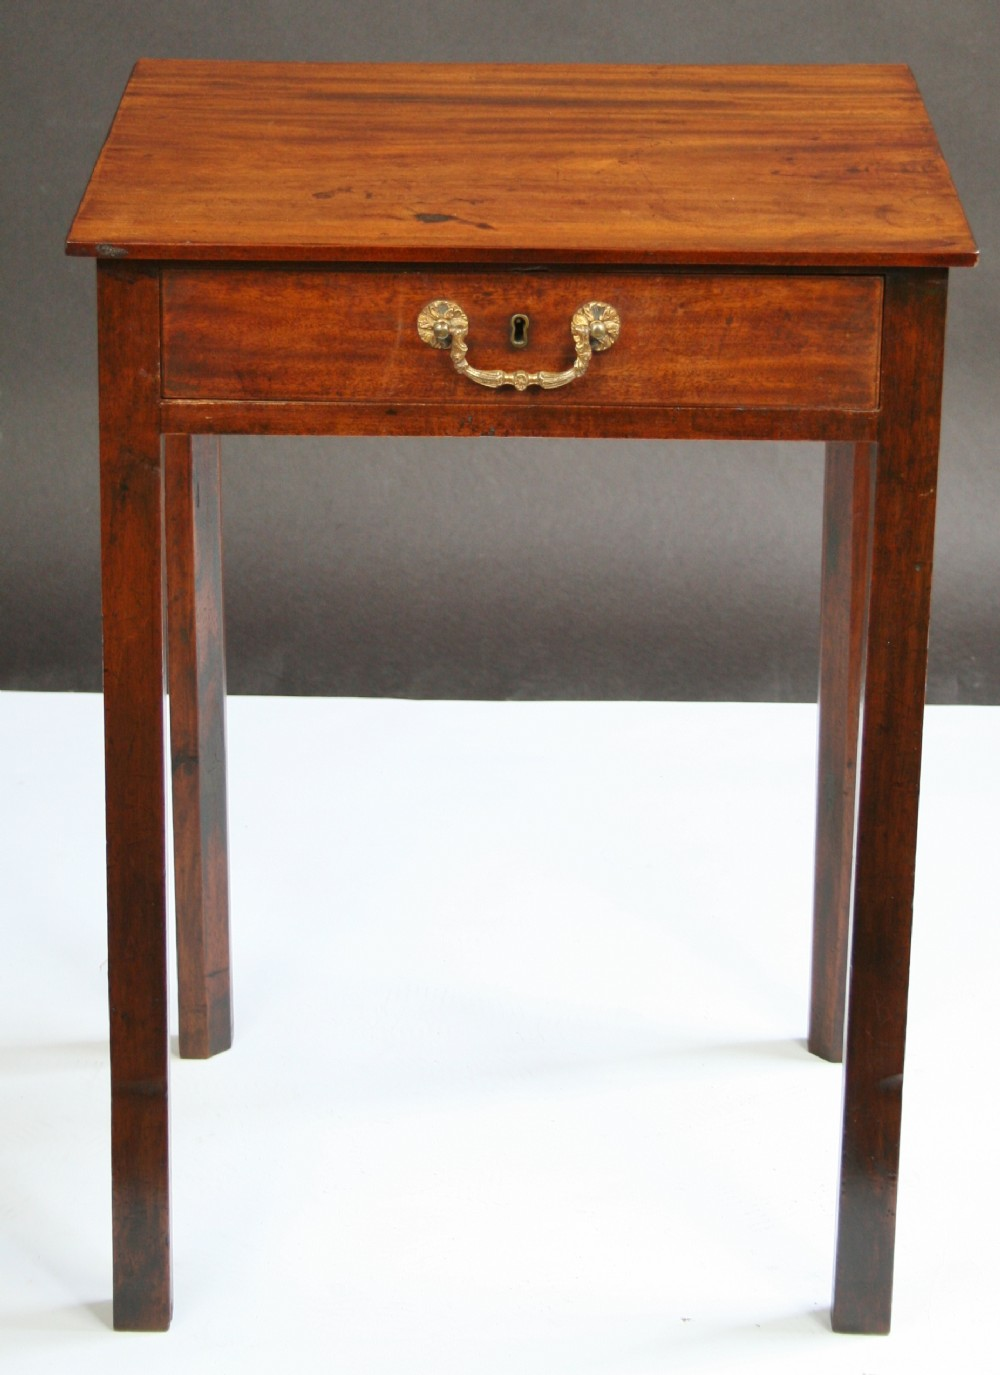 George 111 mahogany single drawer lamp table 286246 george 111 mahogany single drawer lamp table mozeypictures Images